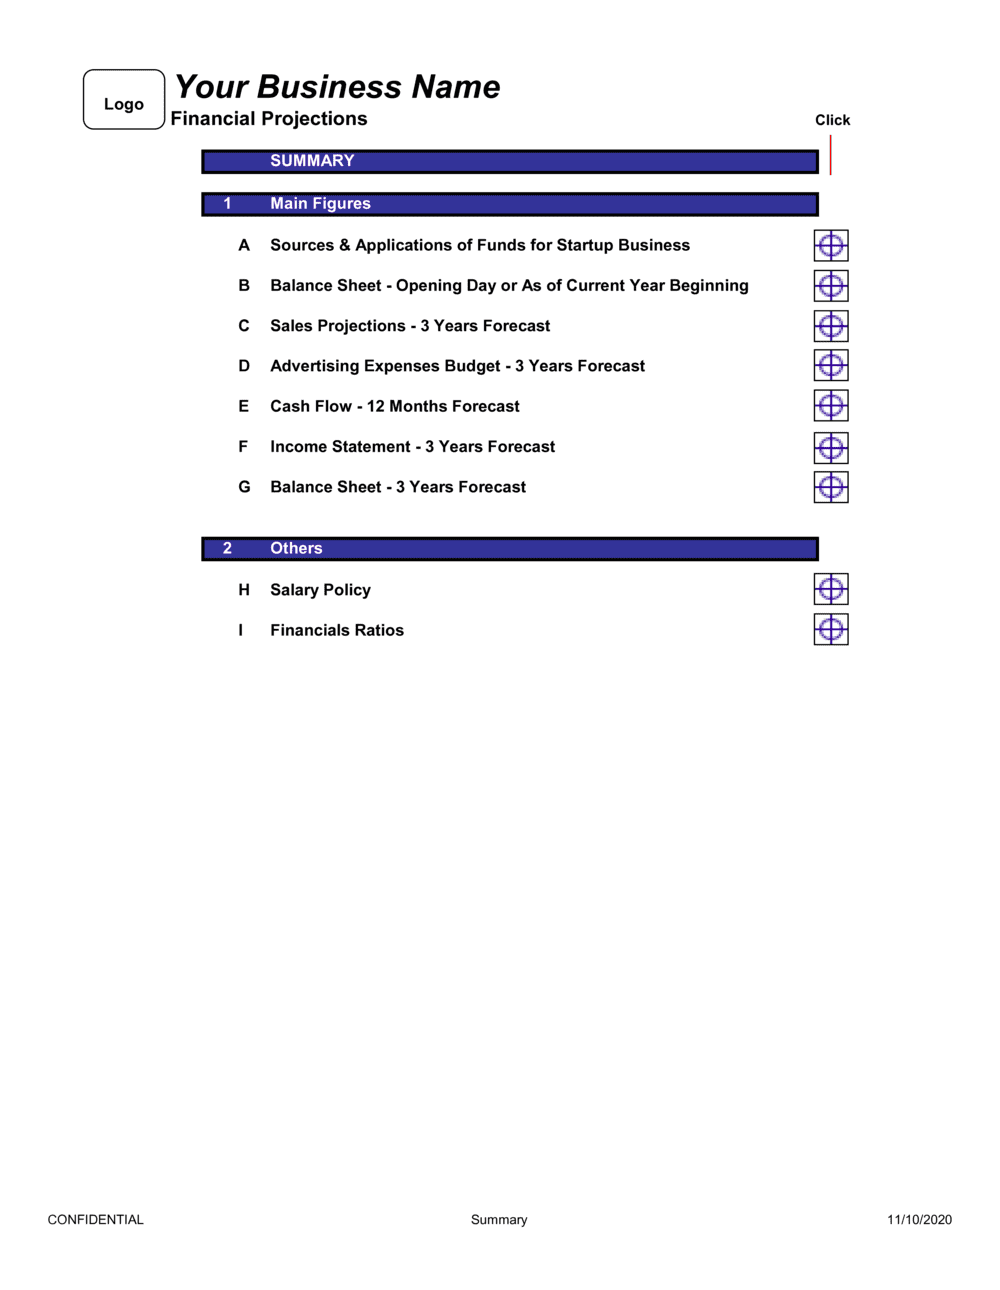 Business-in-a-Box's Financial Projections 3 Years Template